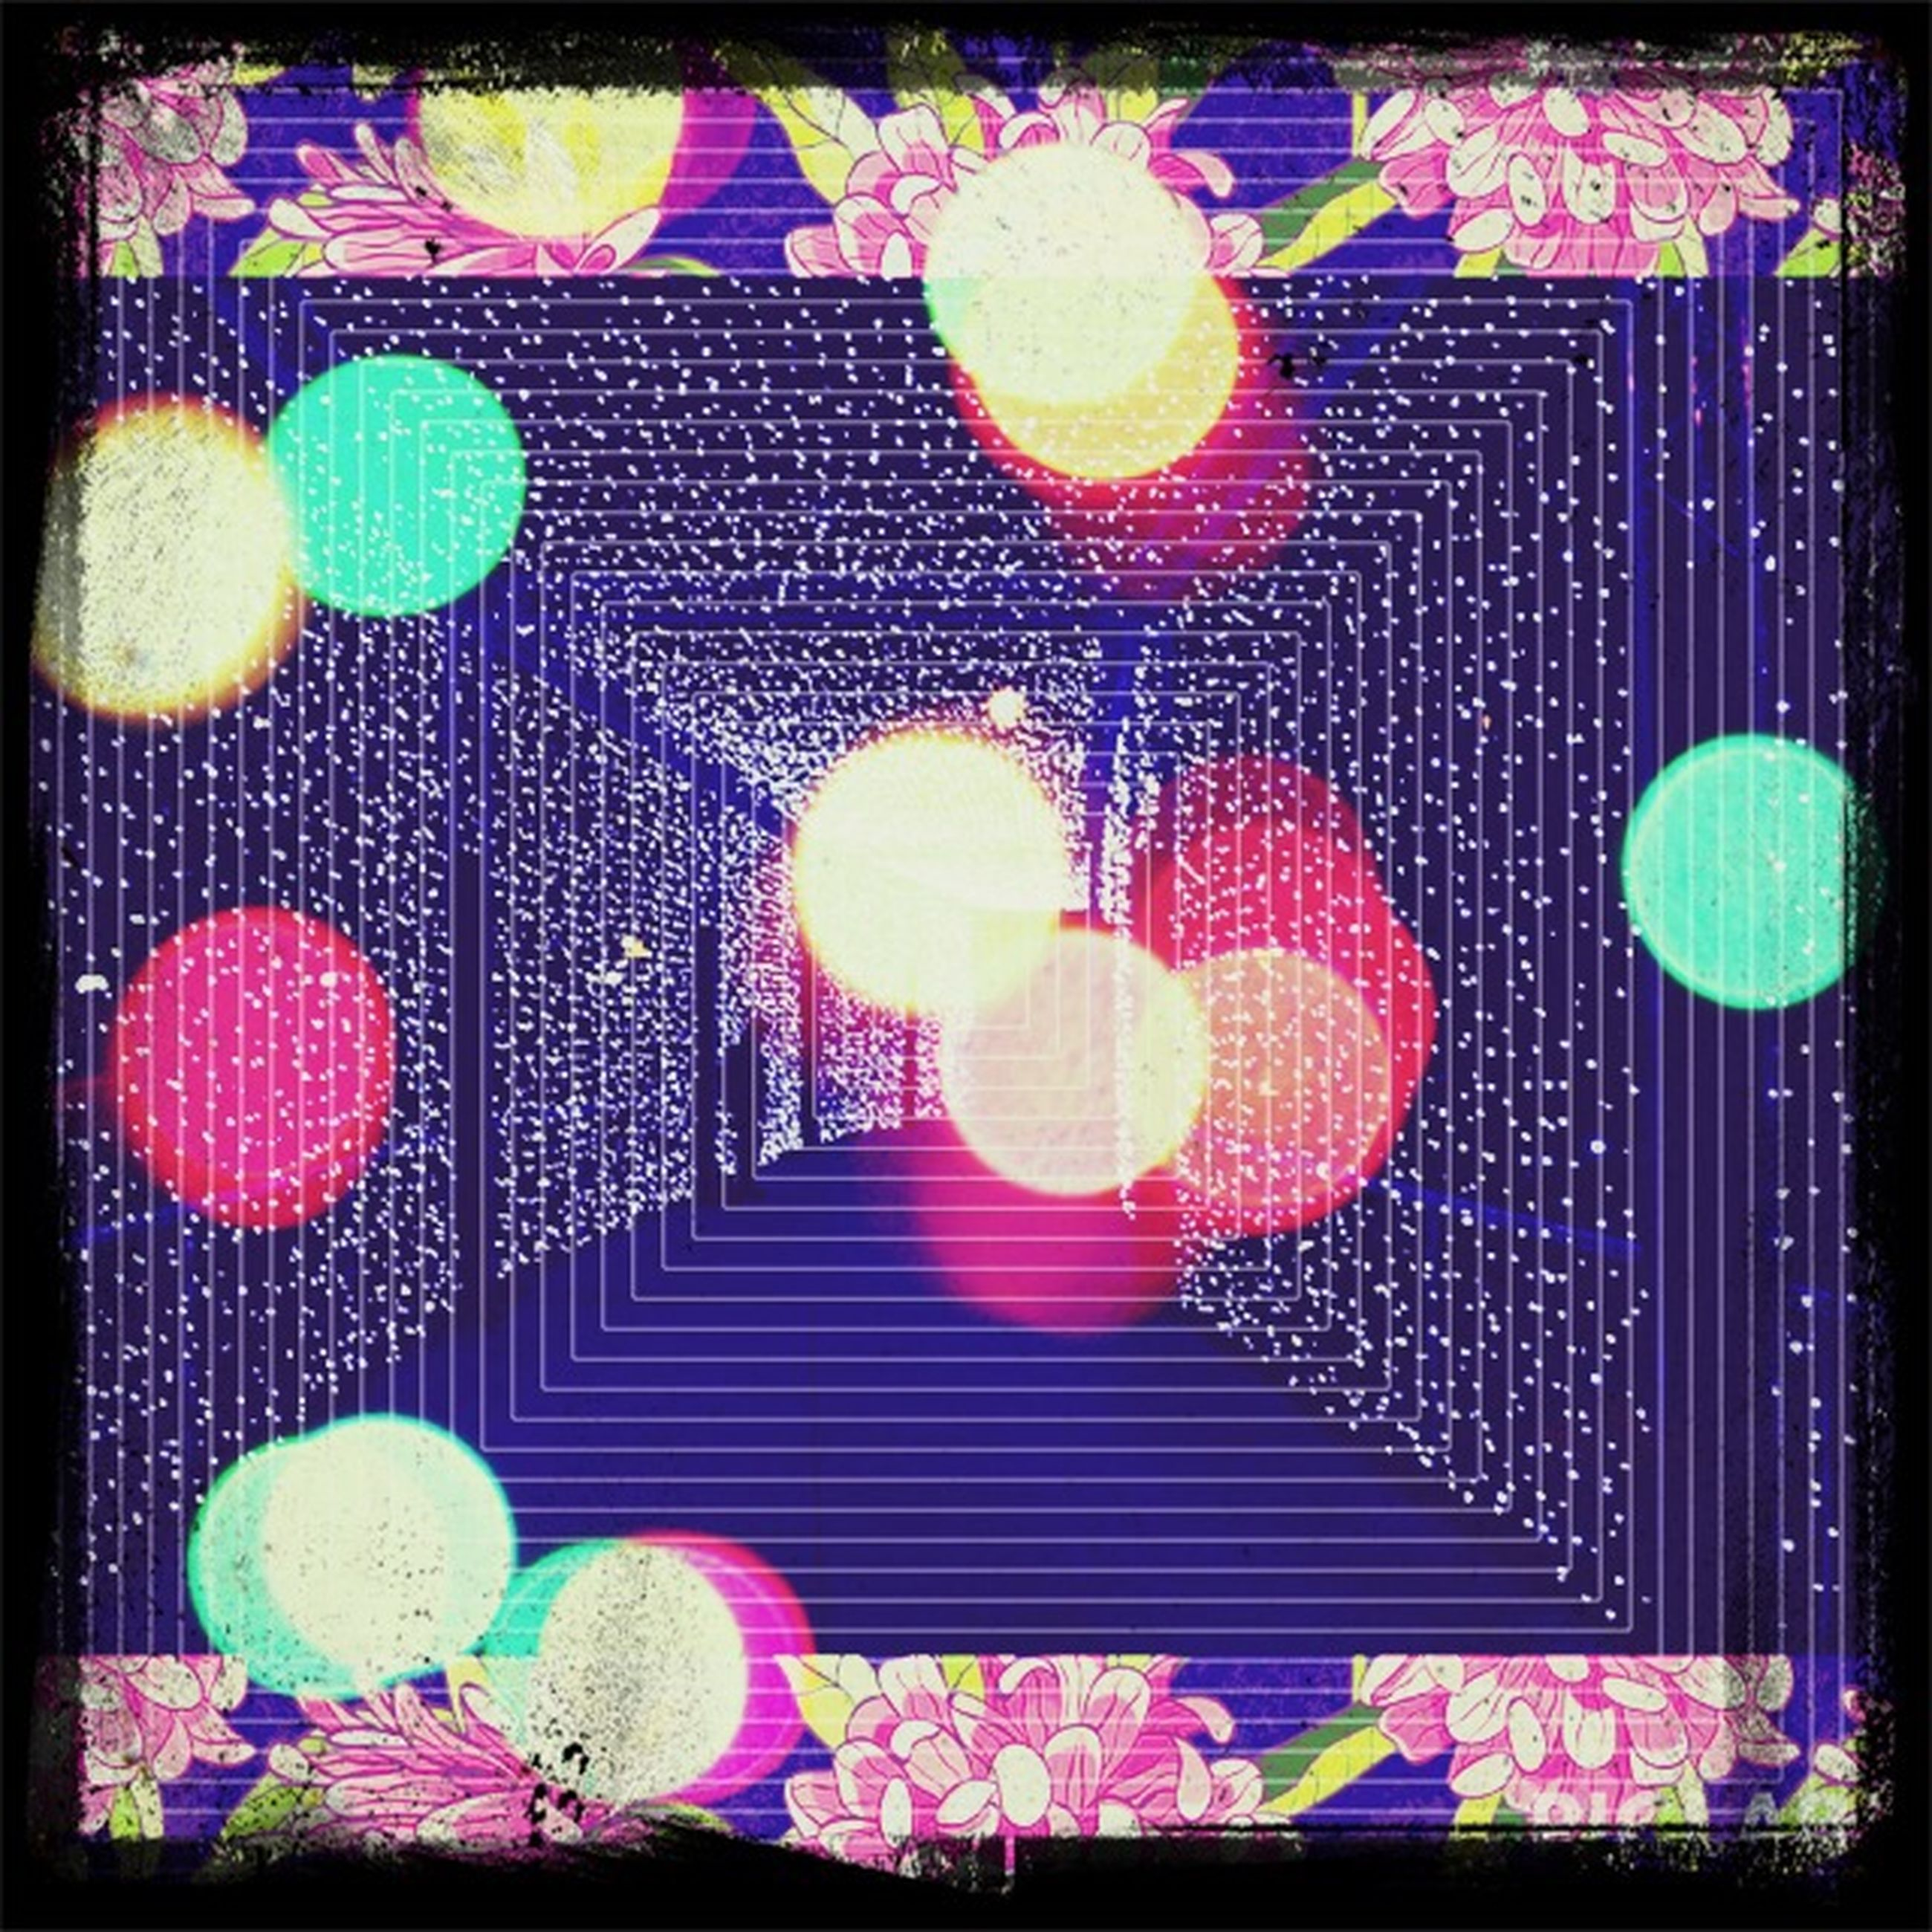 transfer print, auto post production filter, multi colored, art and craft, creativity, art, indoors, pattern, wall - building feature, decoration, design, flower, full frame, floral pattern, no people, variation, backgrounds, pink color, high angle view, built structure